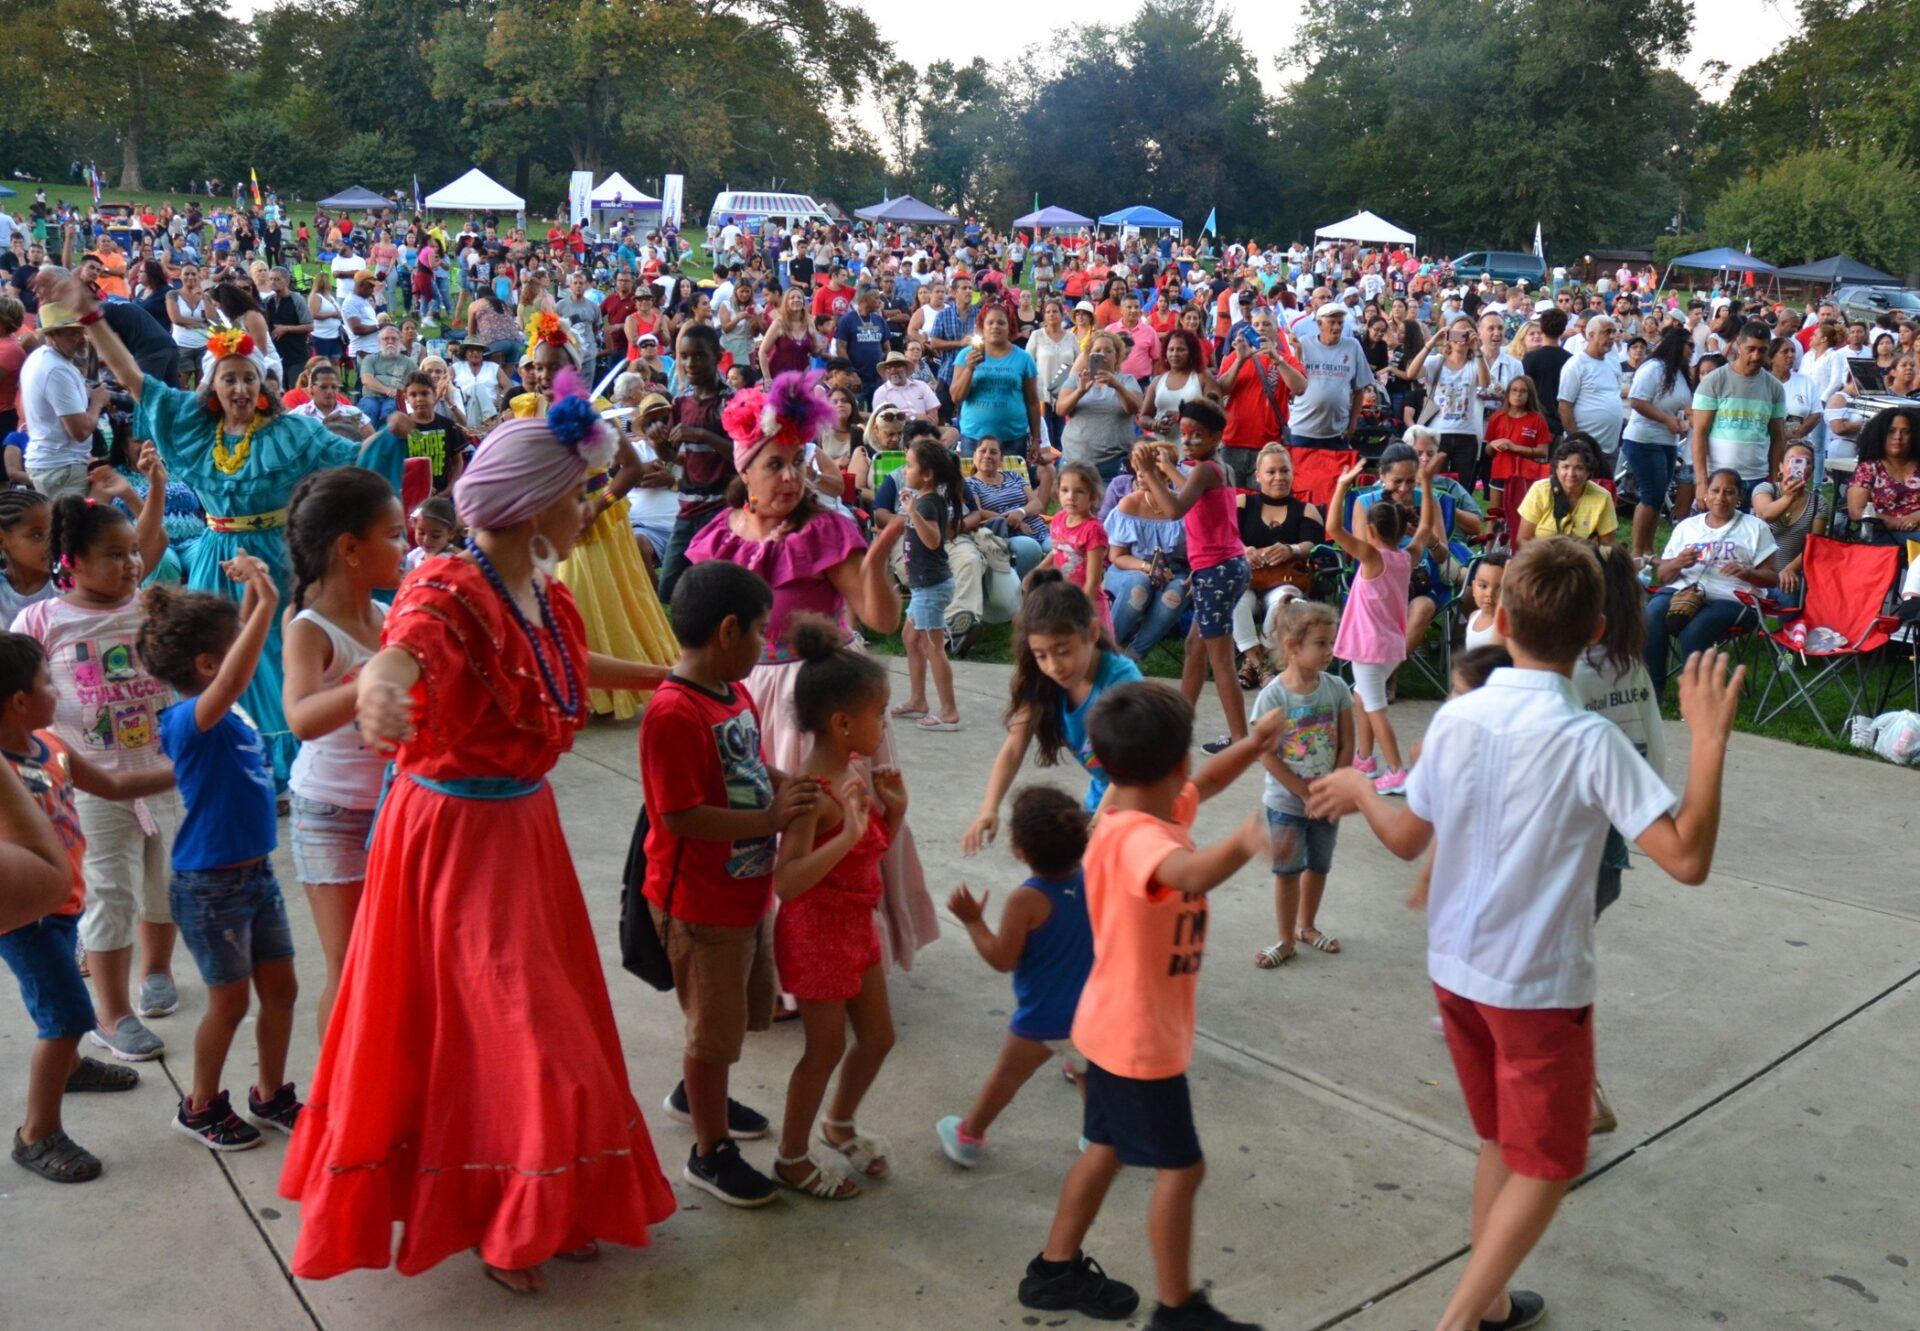 Performers and children dance at Longs Park in an undated photo from the Latin American Festival (Photo: Sollivan Photography | Courtesy of Latin American Alliance)